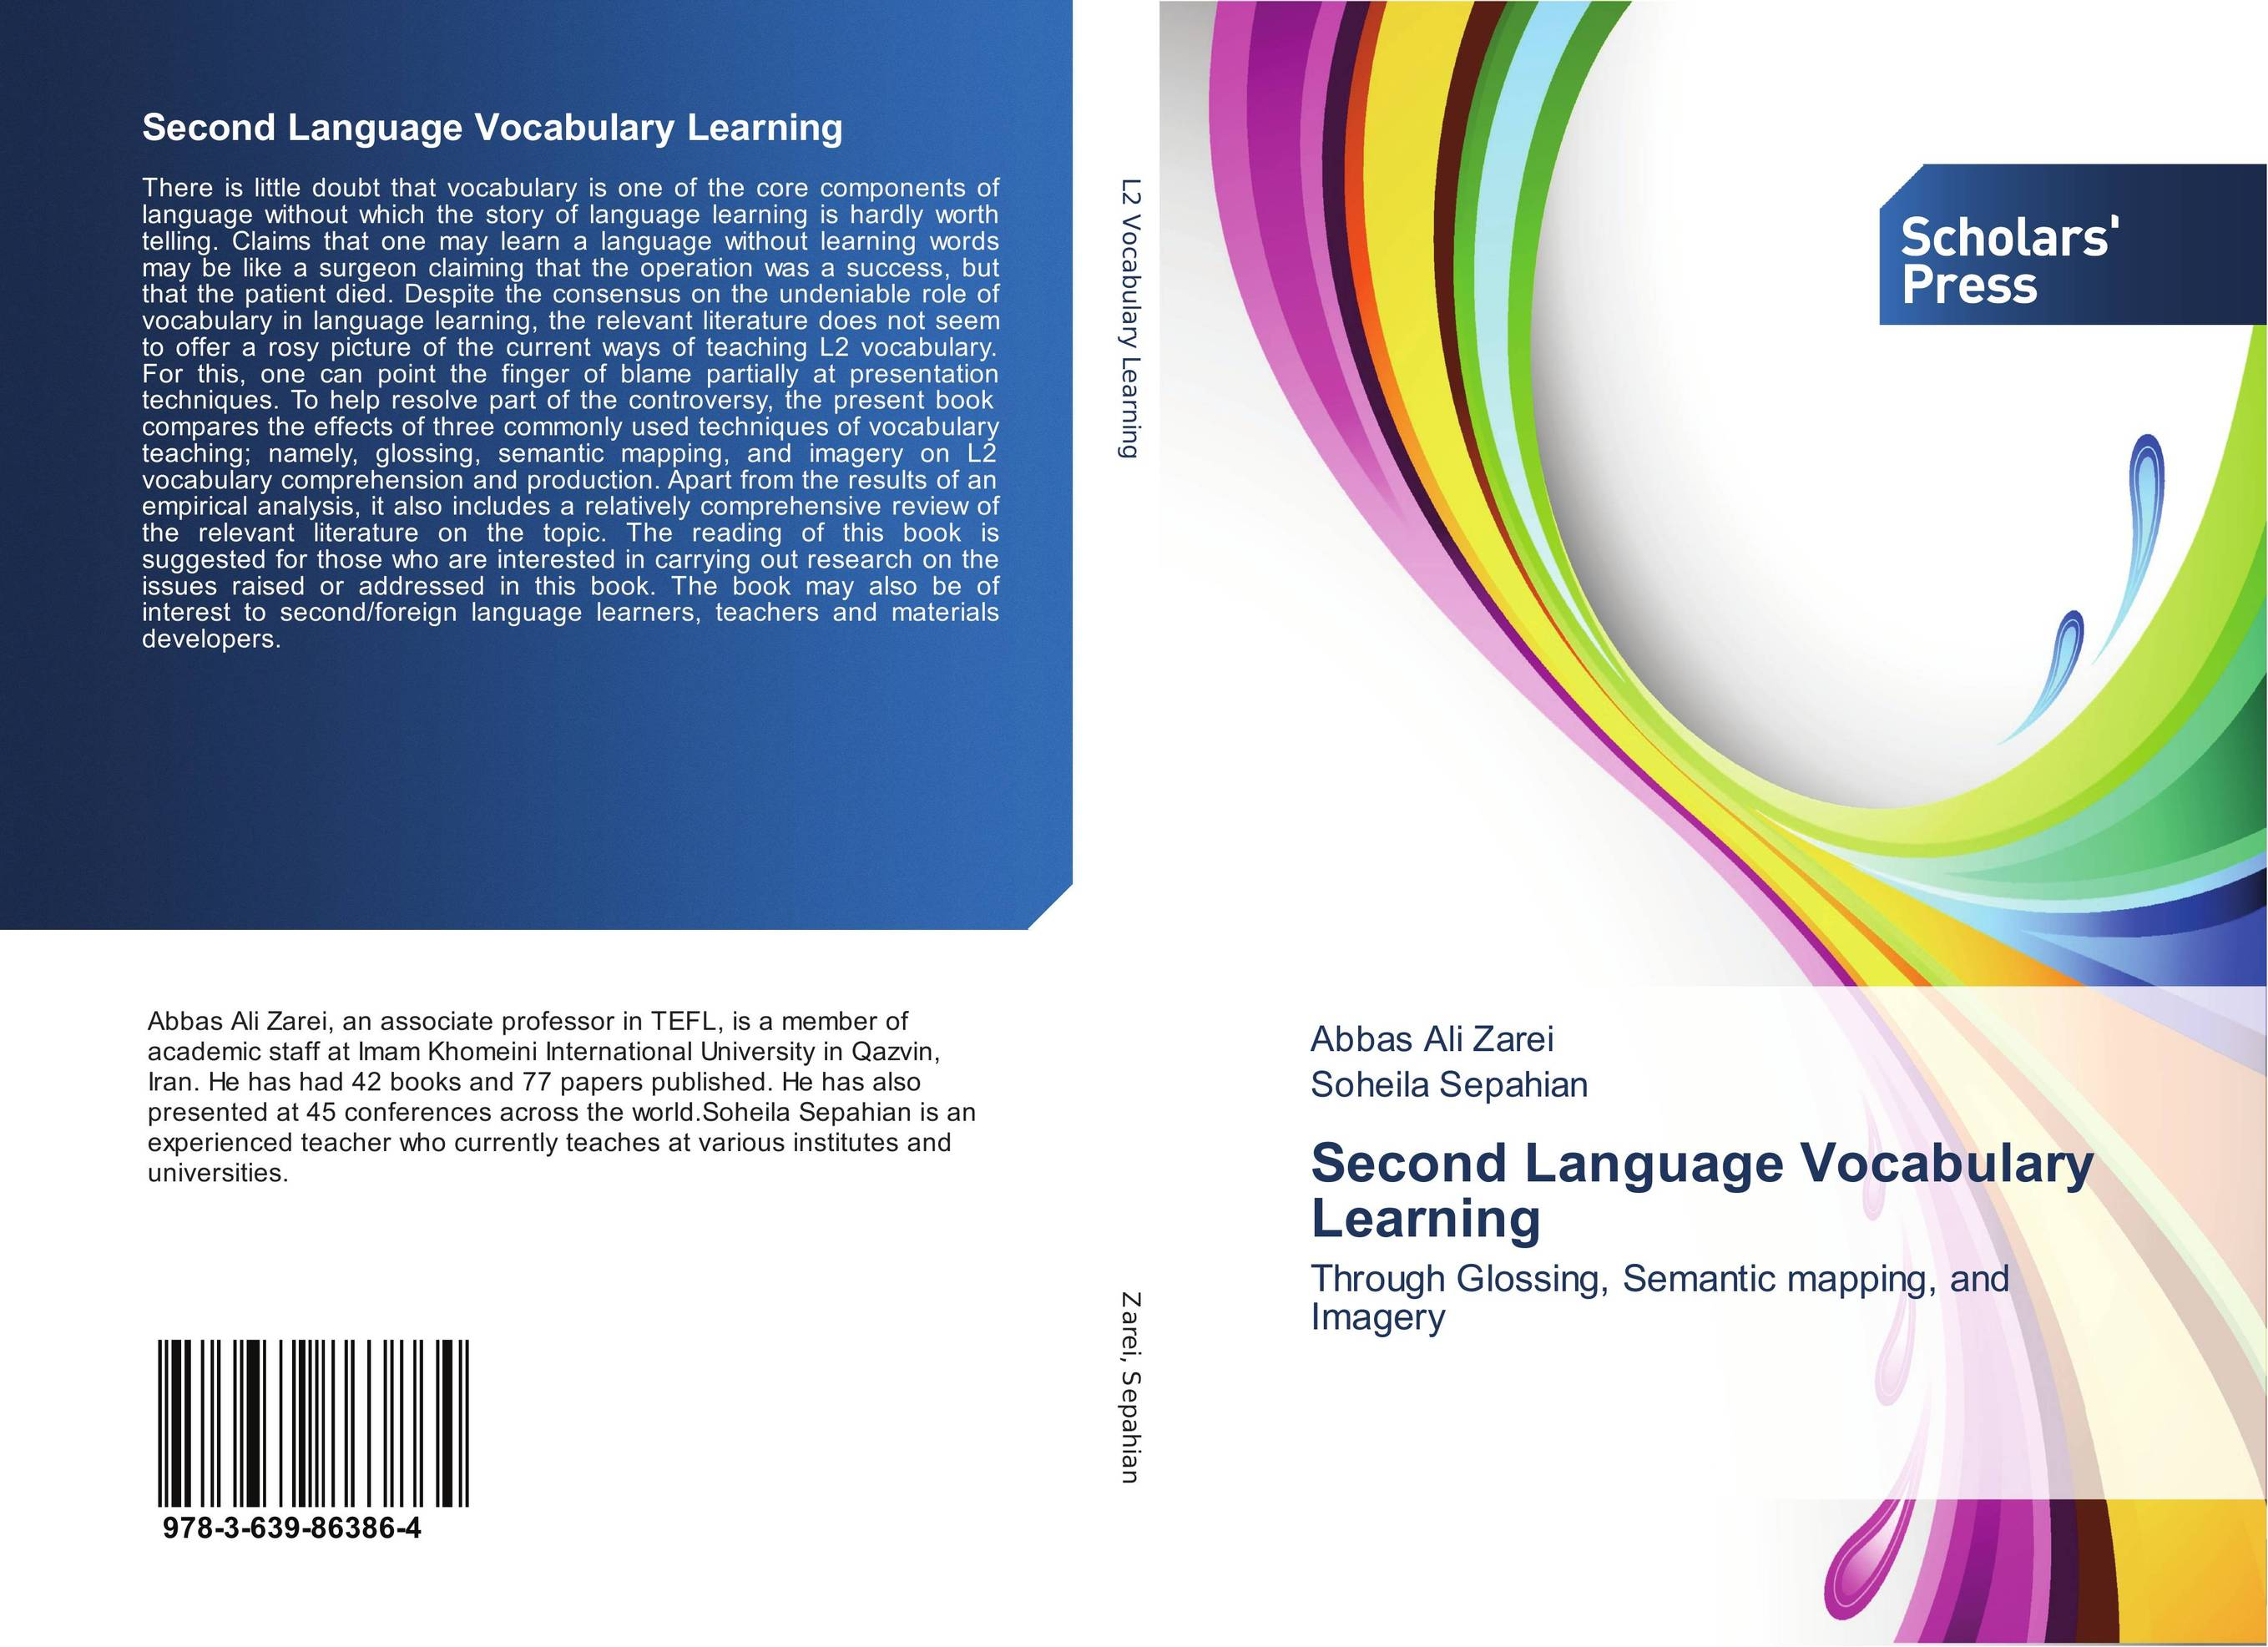 Second Language Vocabulary Learning learner autonomy and web based language learning wbll